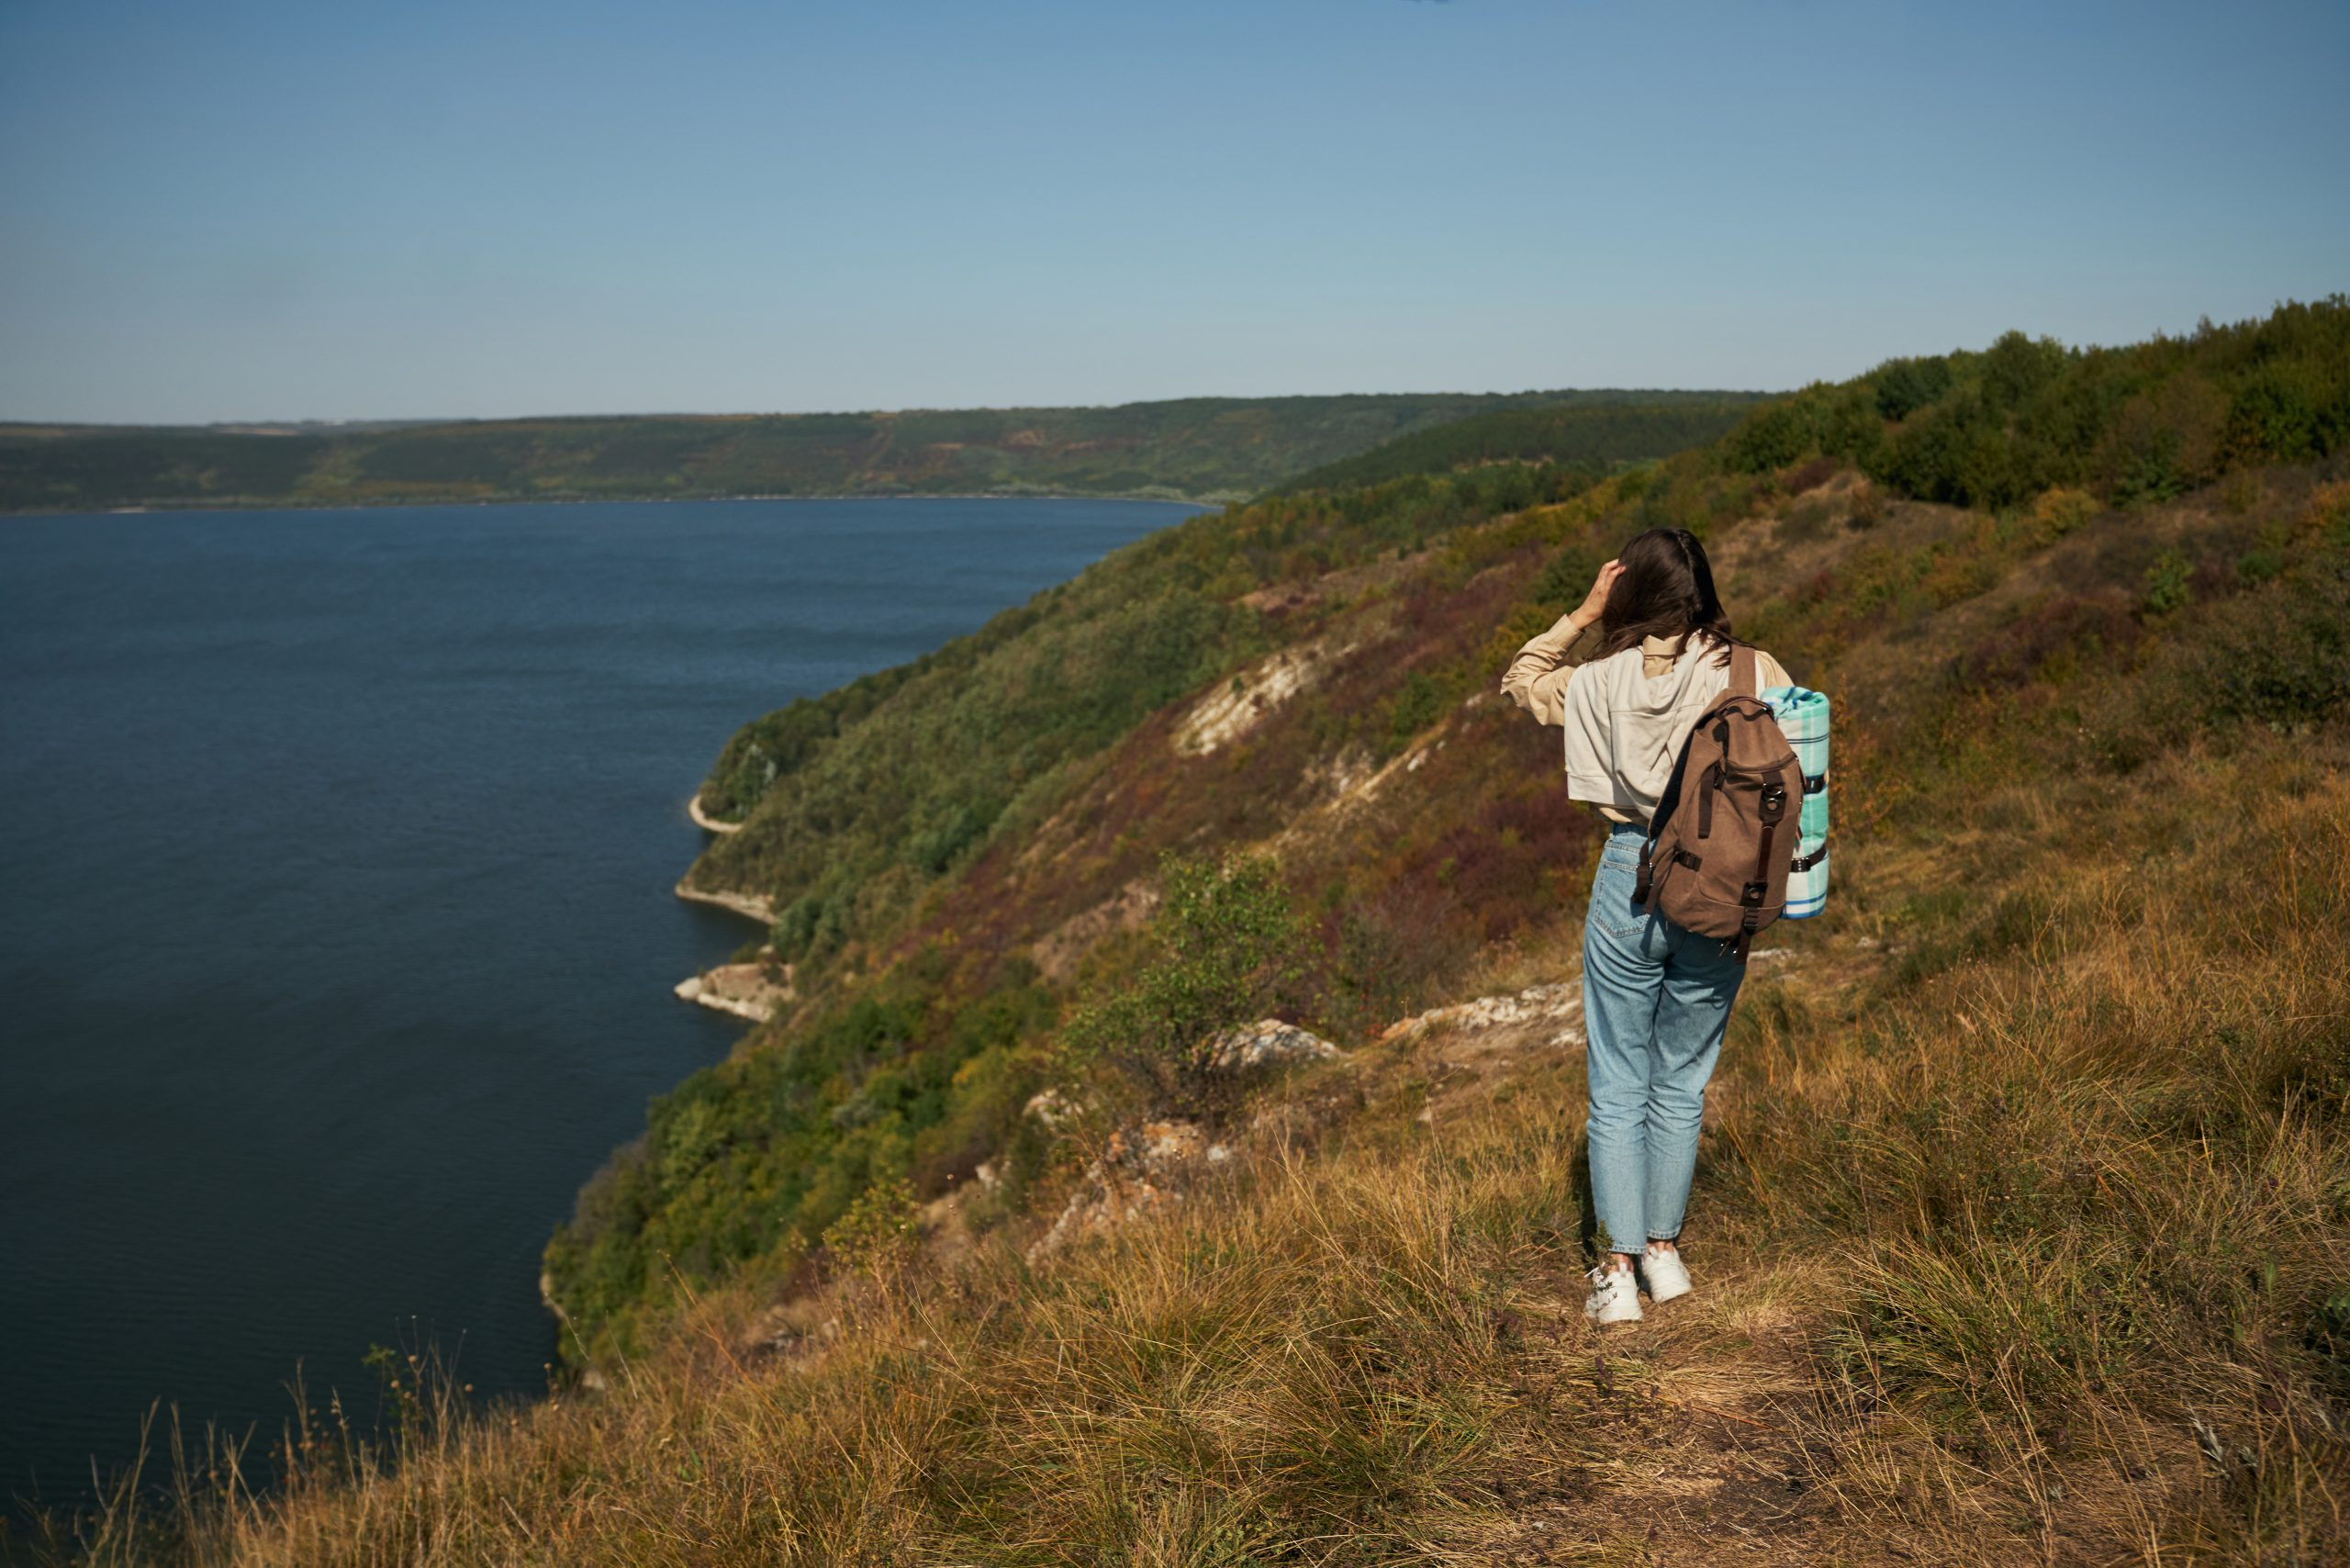 woman-with-backpack-walking-along-high-green-hill-scaled.jpg